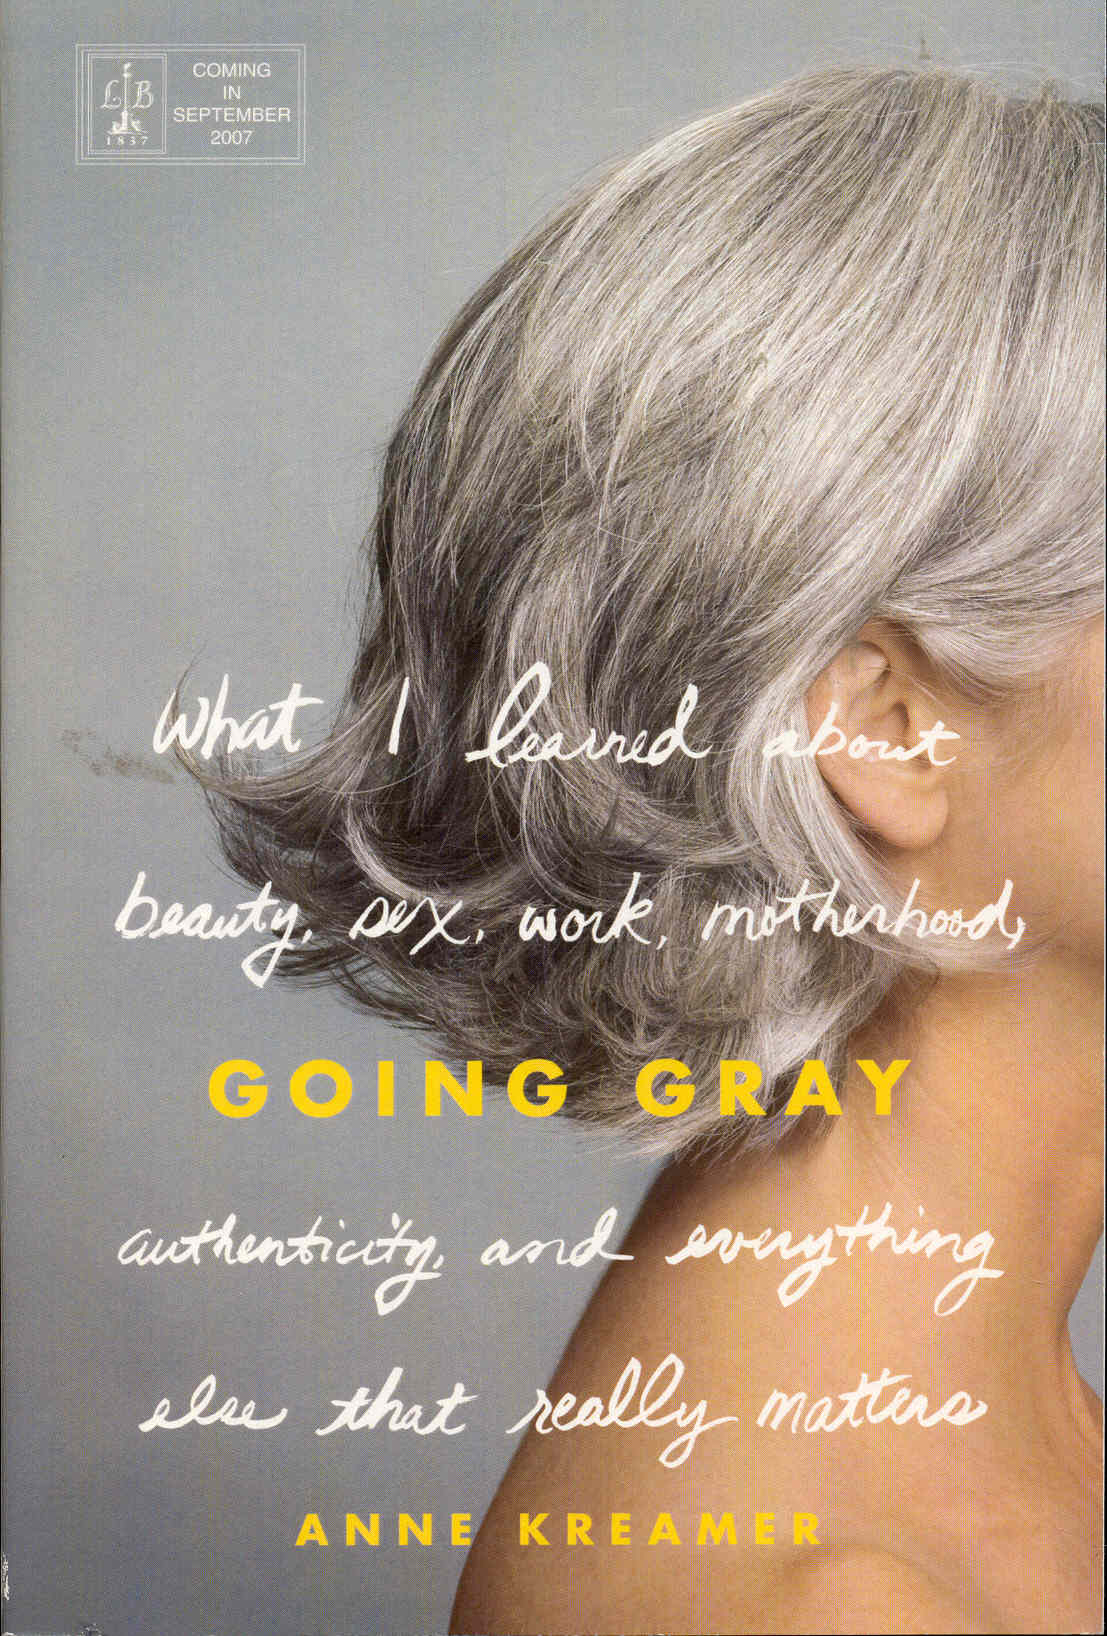 Image for Going Gray: What I Learned About Beauty, Sex, Work, Motherhood, Authenticity, and Everything Else That Really Matters